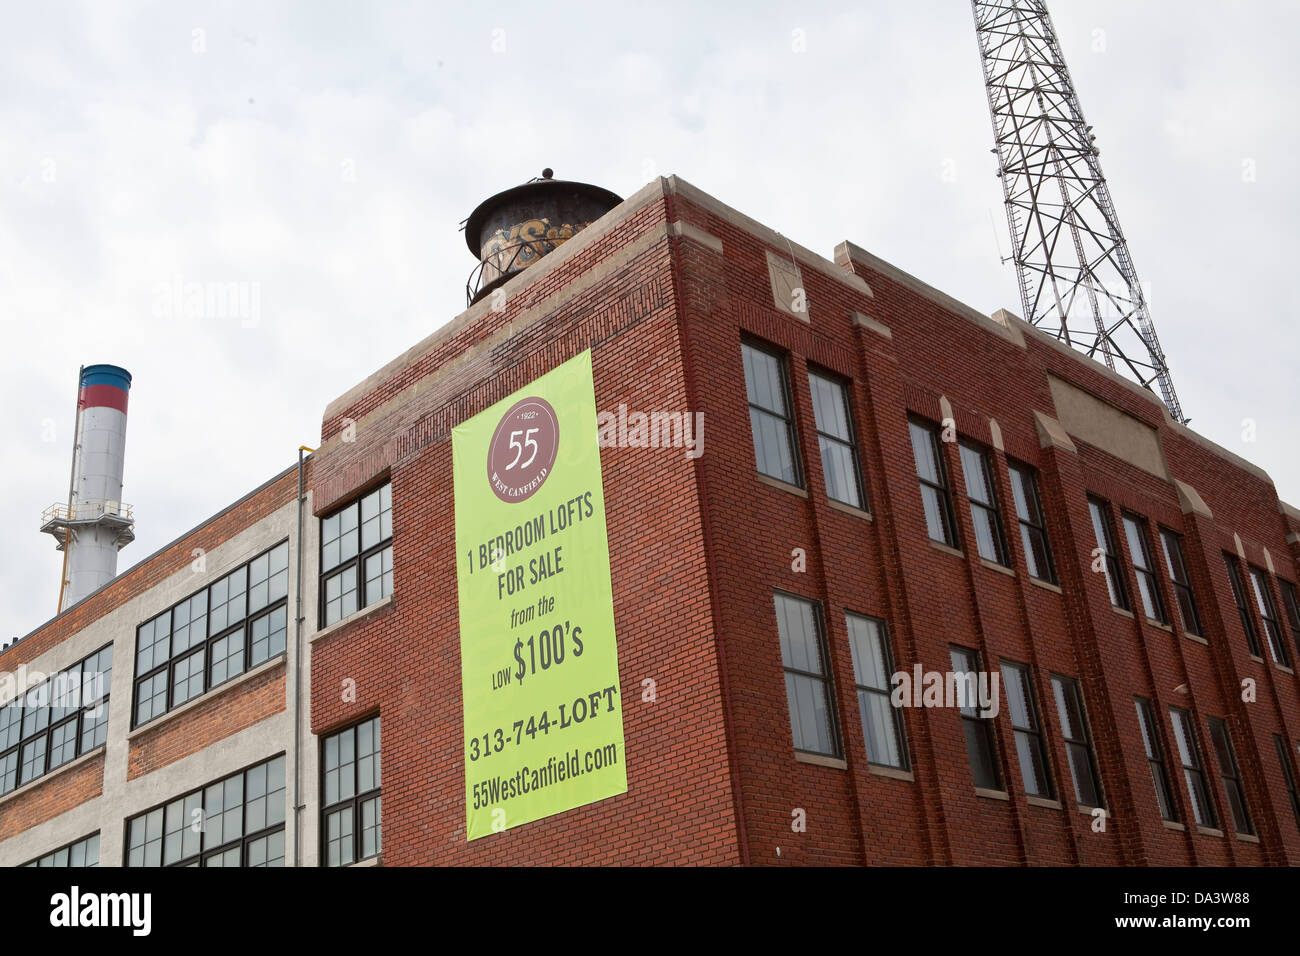 A Sign Showing 1 Bedroom Lofts For Sale Is Seen In Detroit Mi Stock